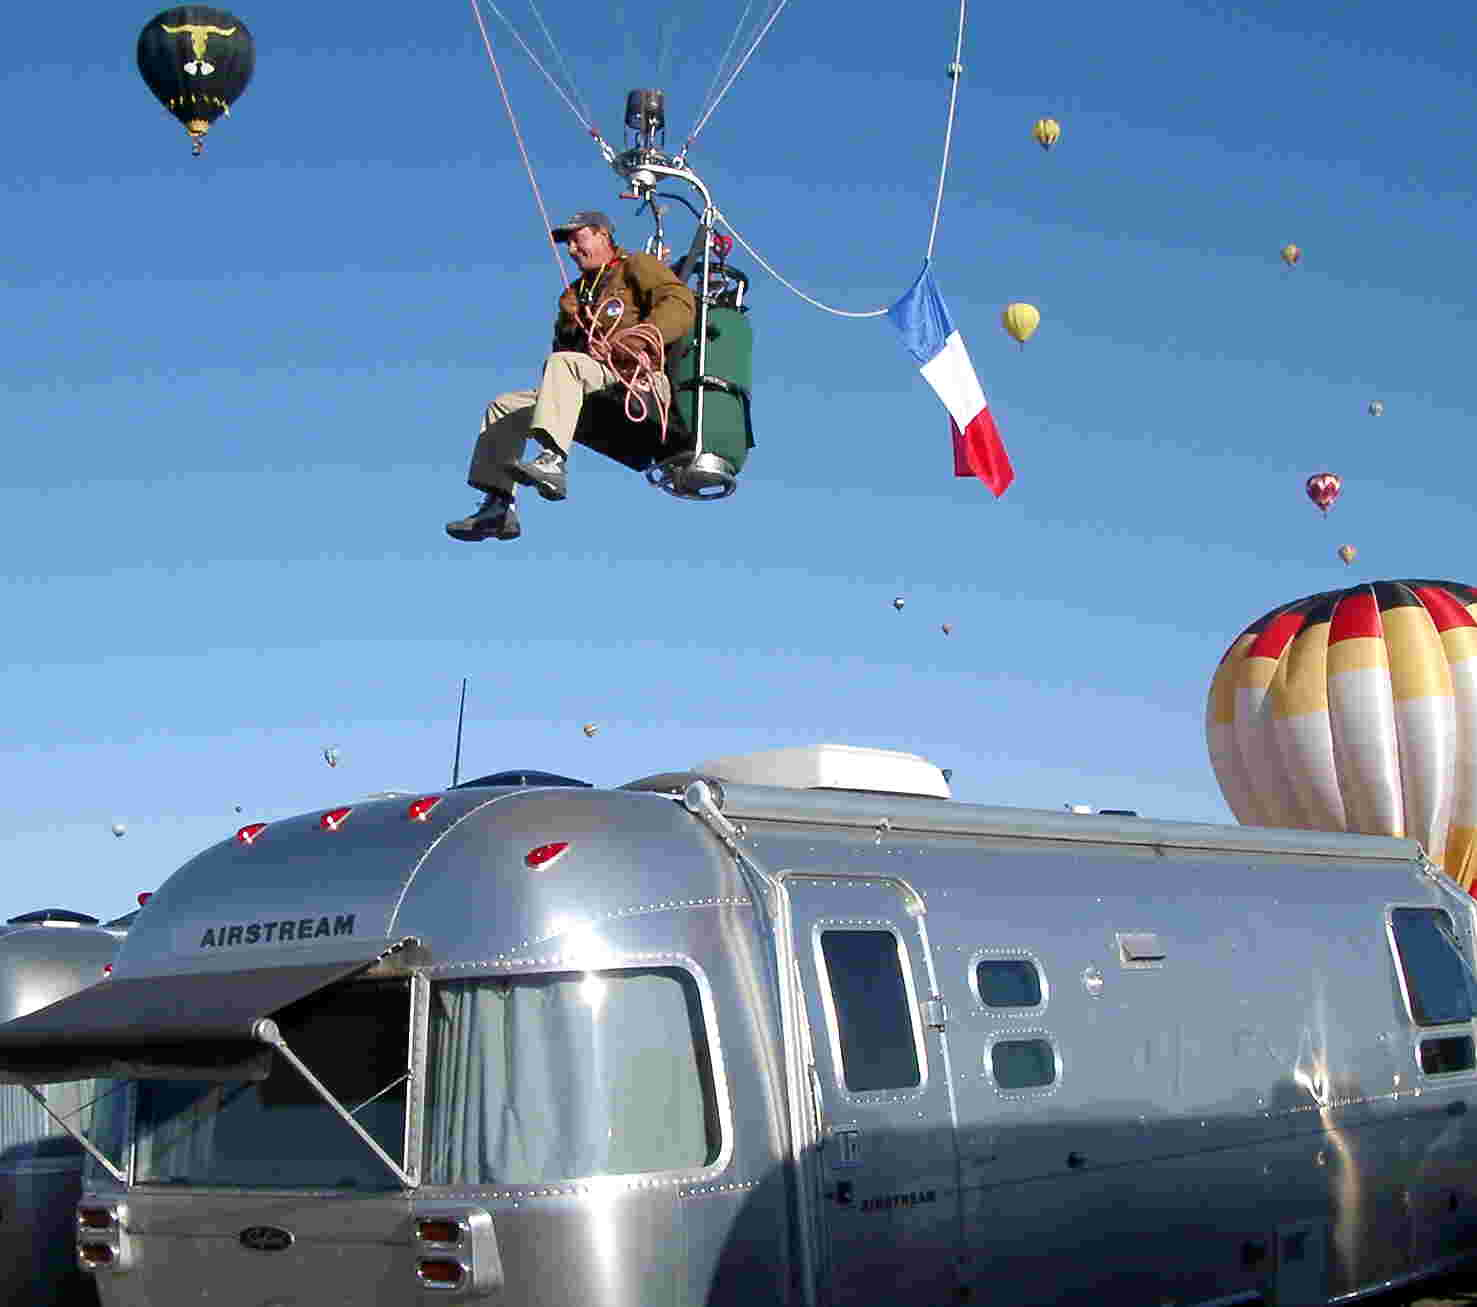 Click image for larger version  Name:Parisian balloonist buzzes airstream.jpg Views:87 Size:58.5 KB ID:69058